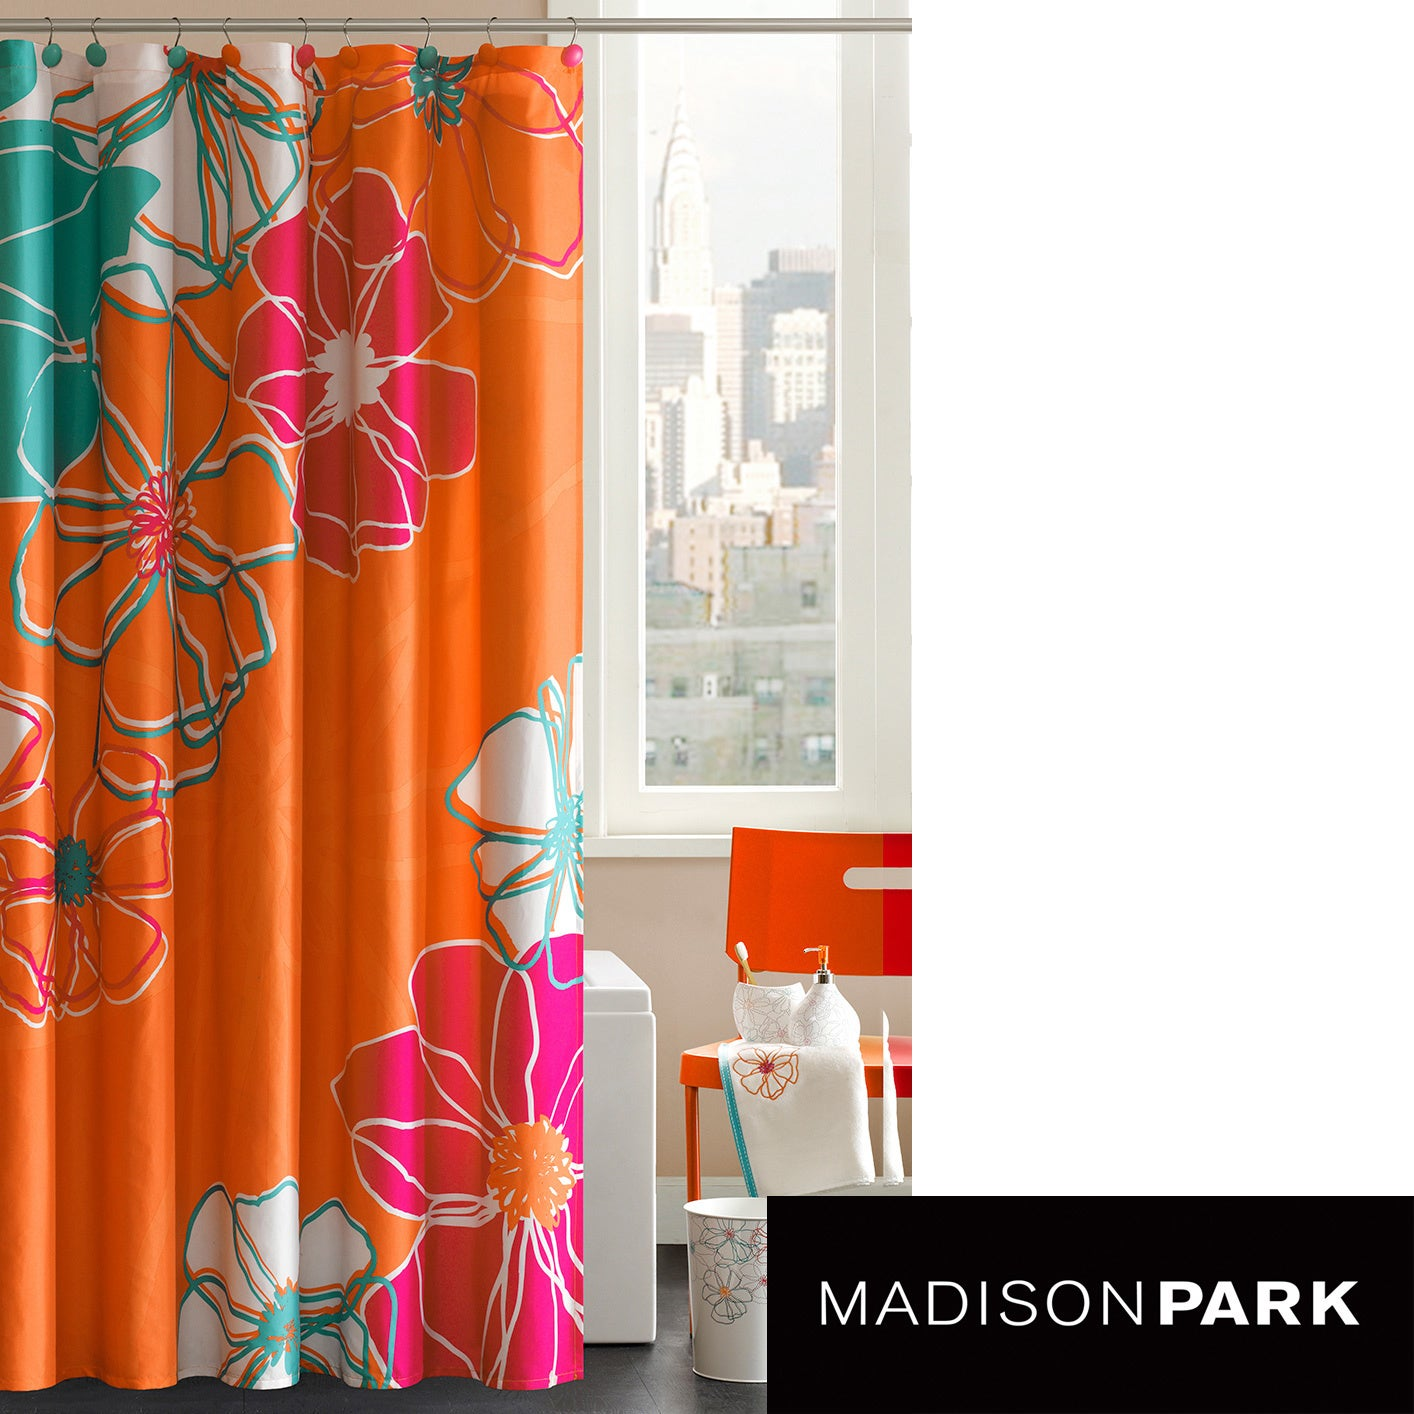 French Lace Kitchen Curtains Turquoise and Orange Curtains